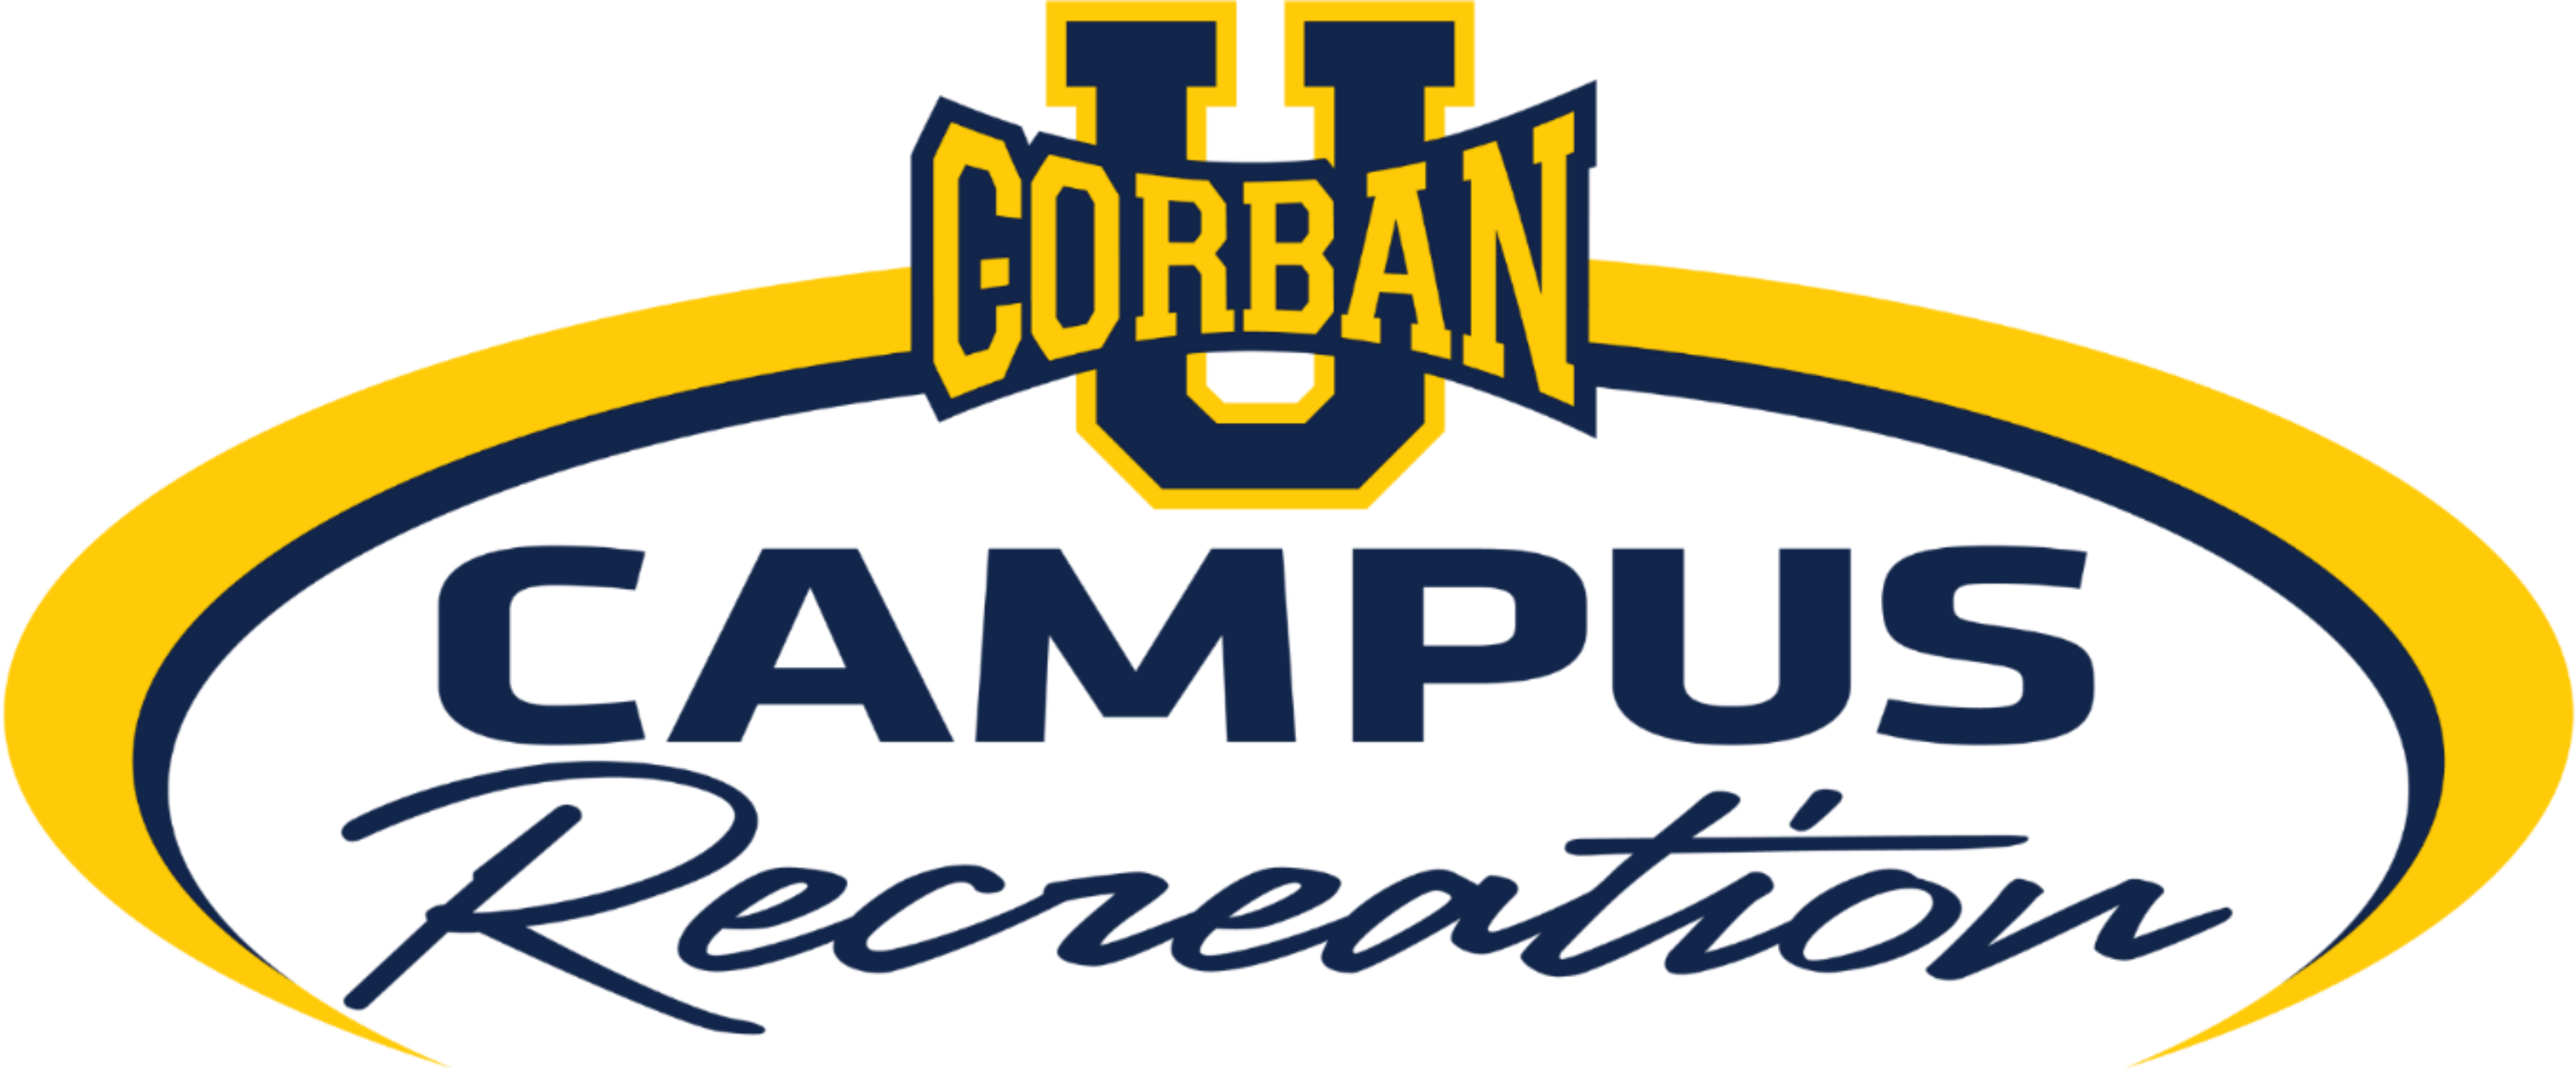 https://media.corban.edu/ds9/images/29048-CorbanCampusRec-Logo.png